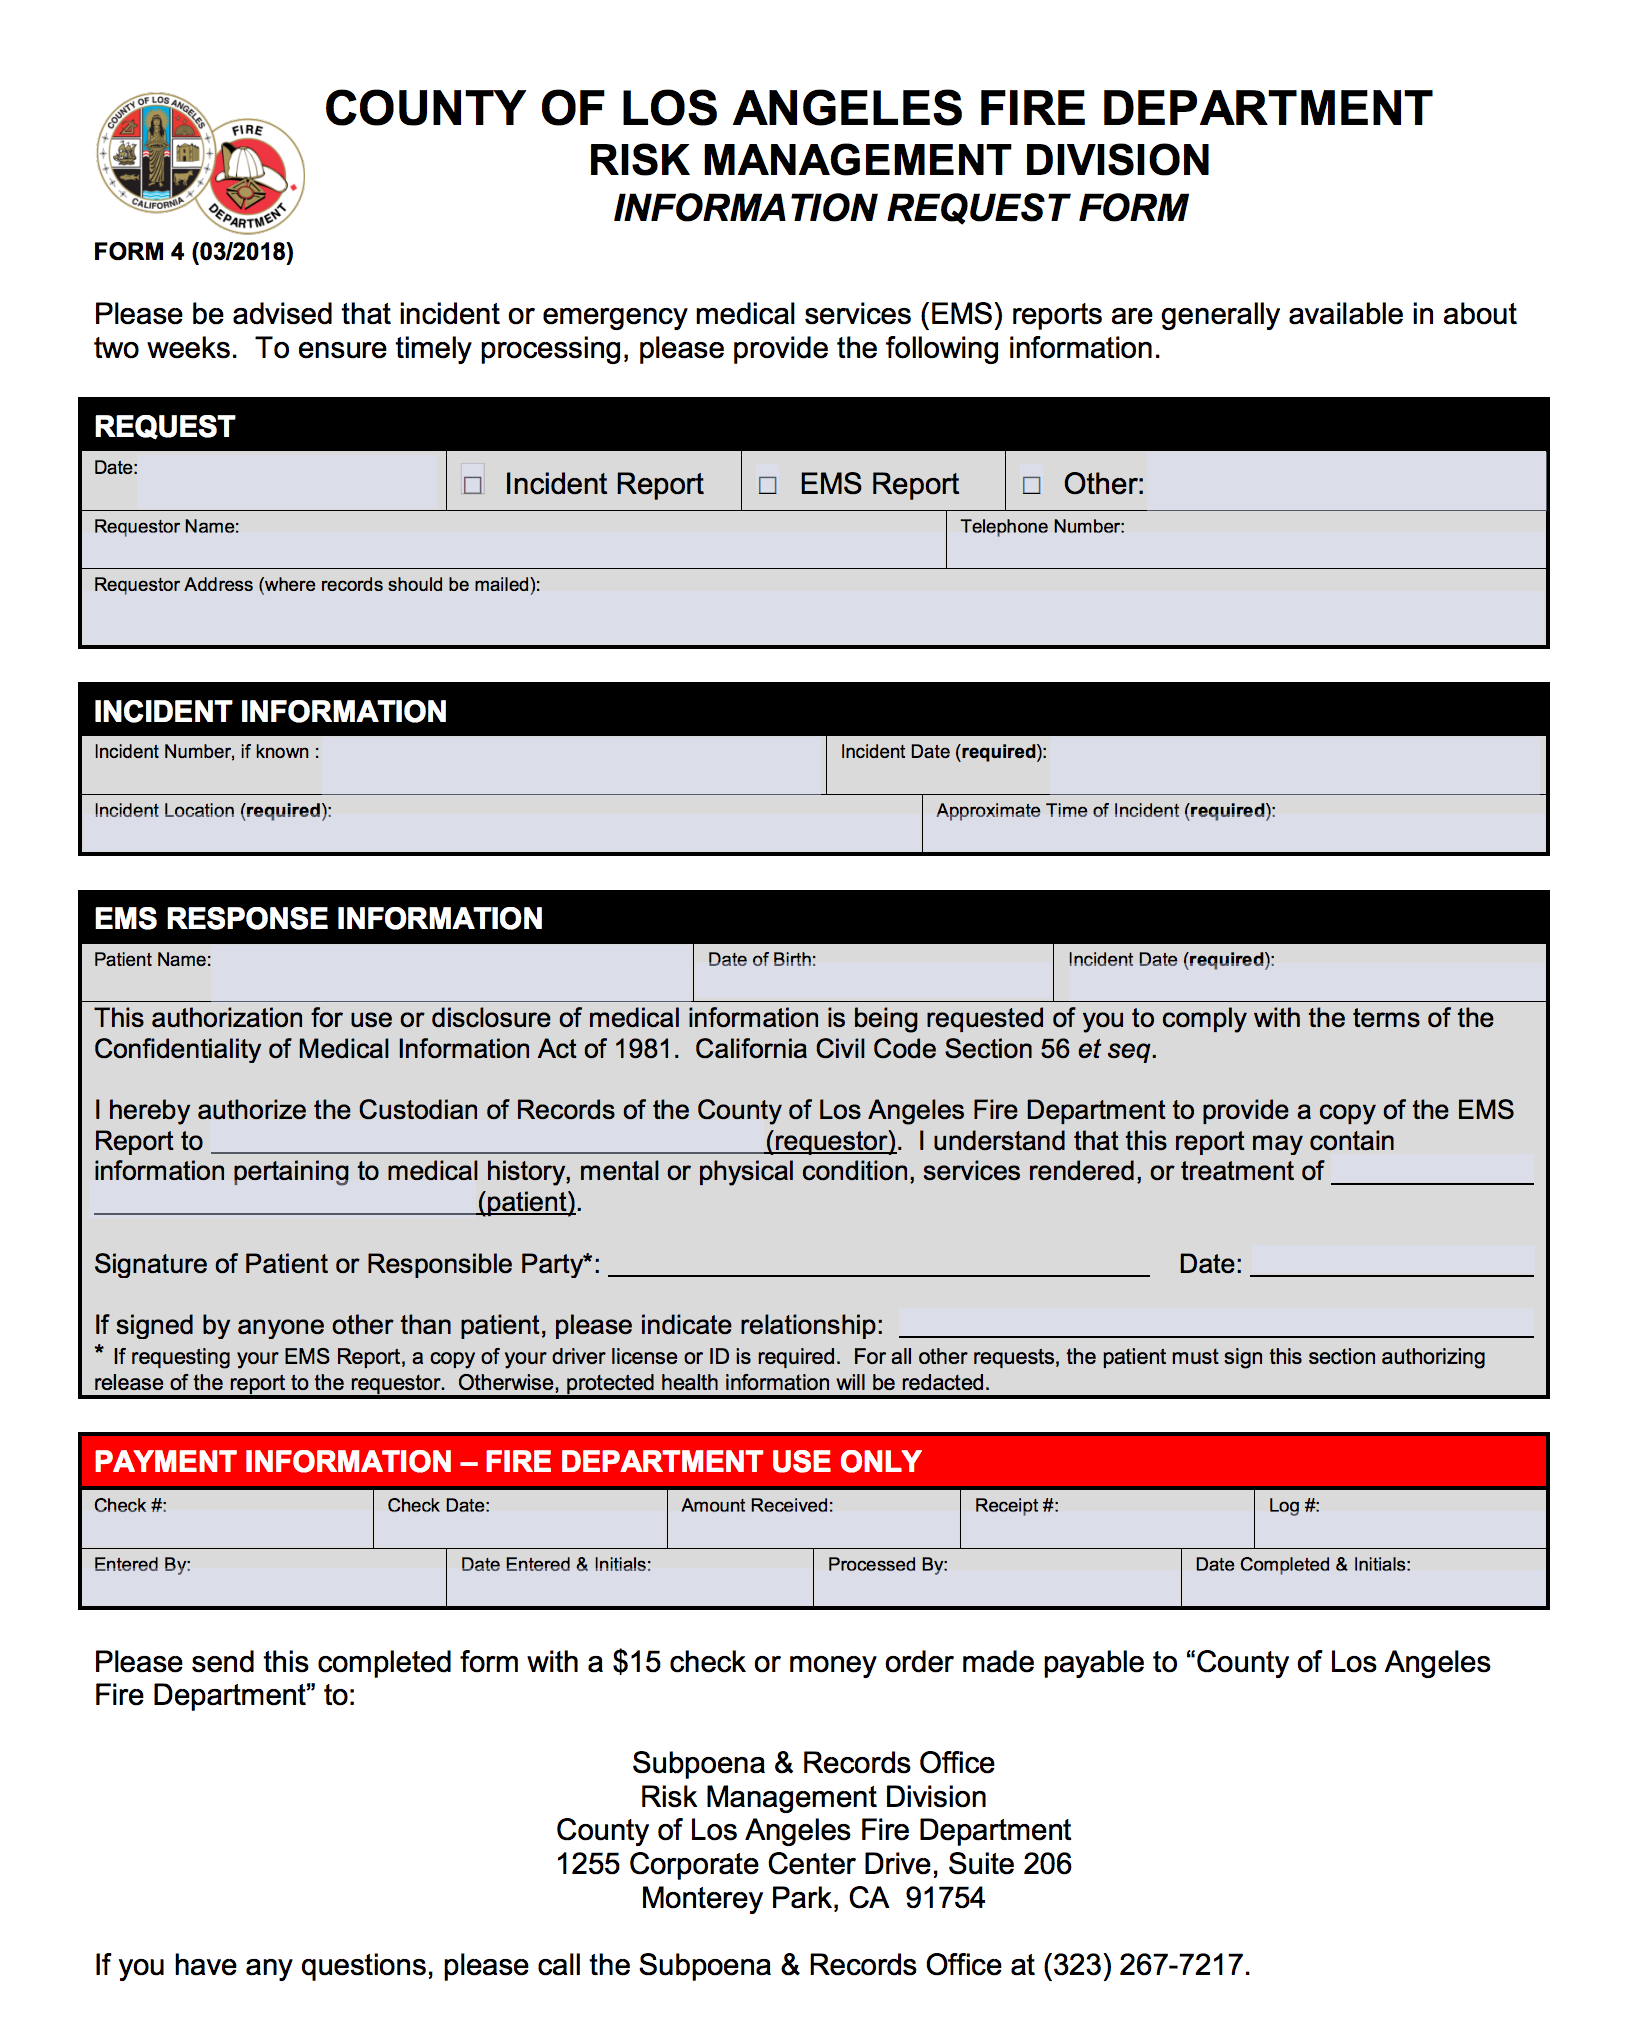 Picture of the ems form.